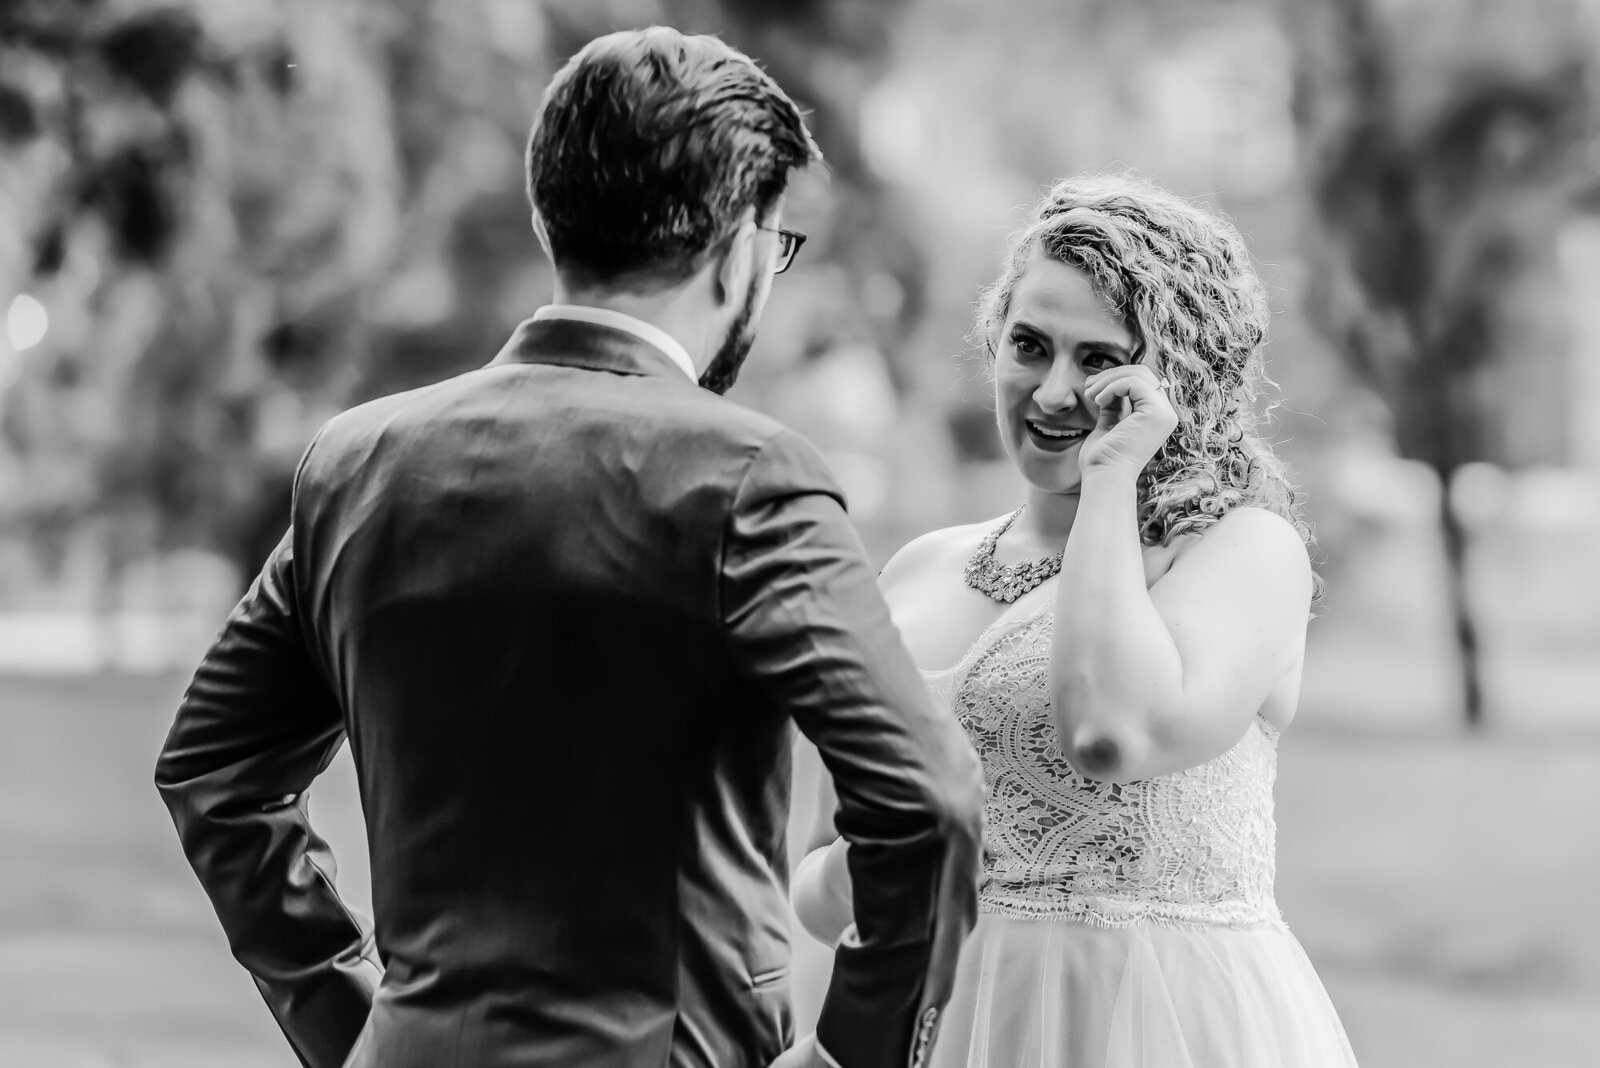 Black and white candid photo of an emotional first look between a bride and her groom before their wedding